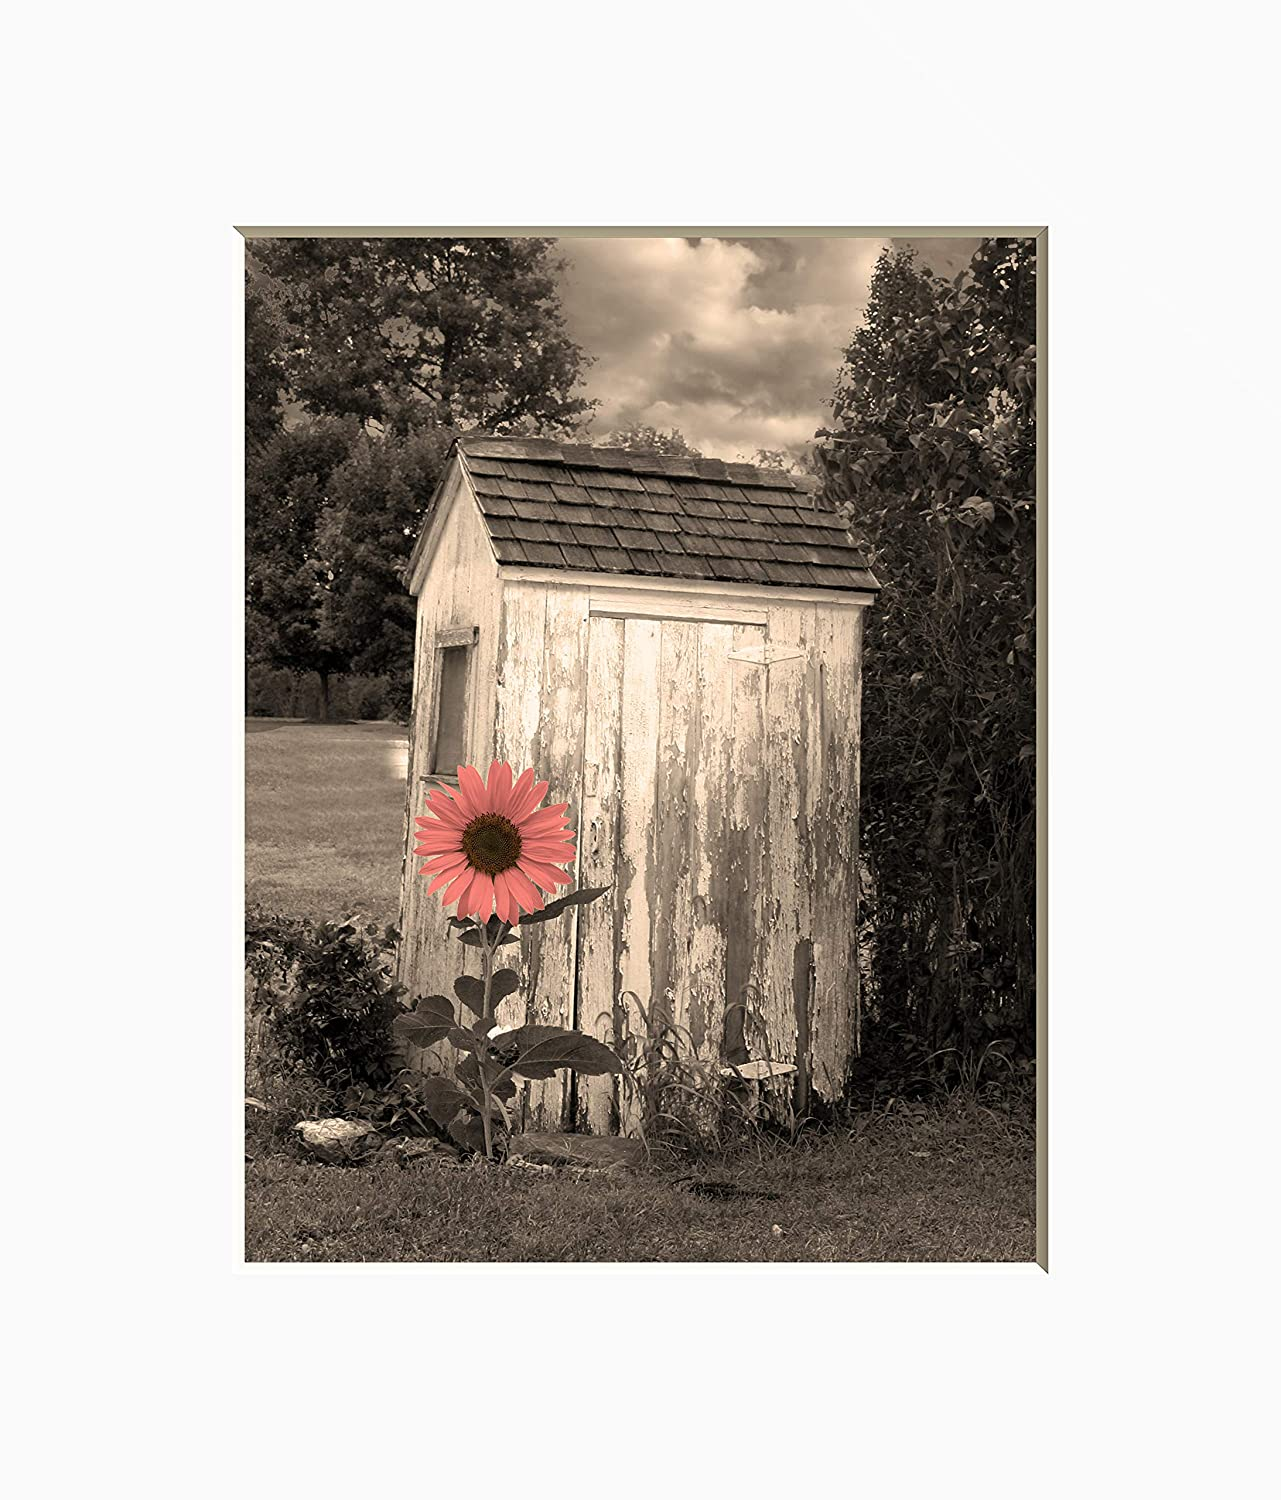 Farmhouse Bathroom Wall Art, Sunflower Outhouse Country Theme Bath Artwork 8x10 Inch Picture With 11x14 White Mat